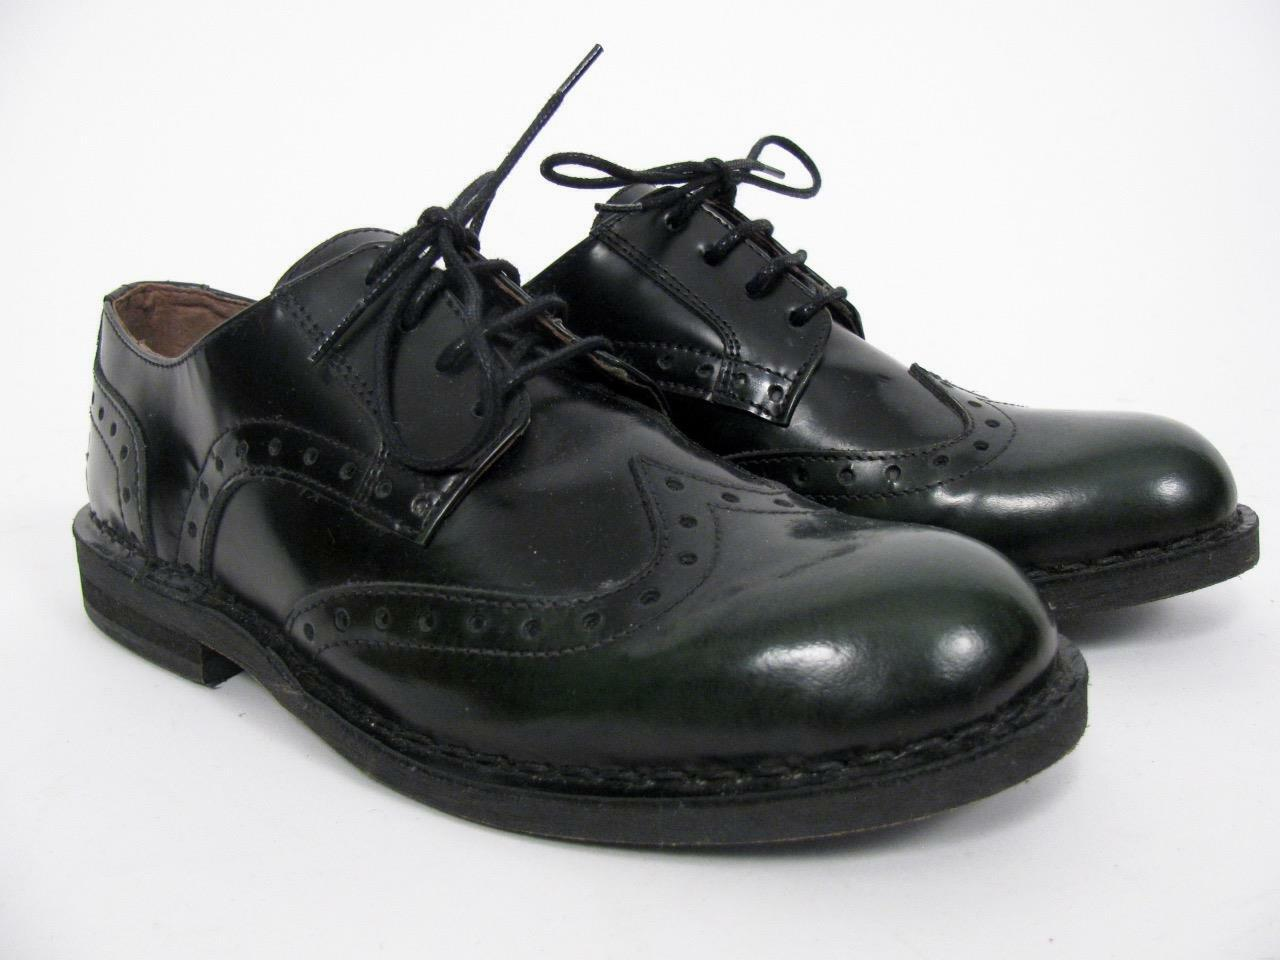 FLY LONDON BLACK LEATHER BROGUE WINGTIP LACED CLASSIC OXFORD LADIES SHOES37